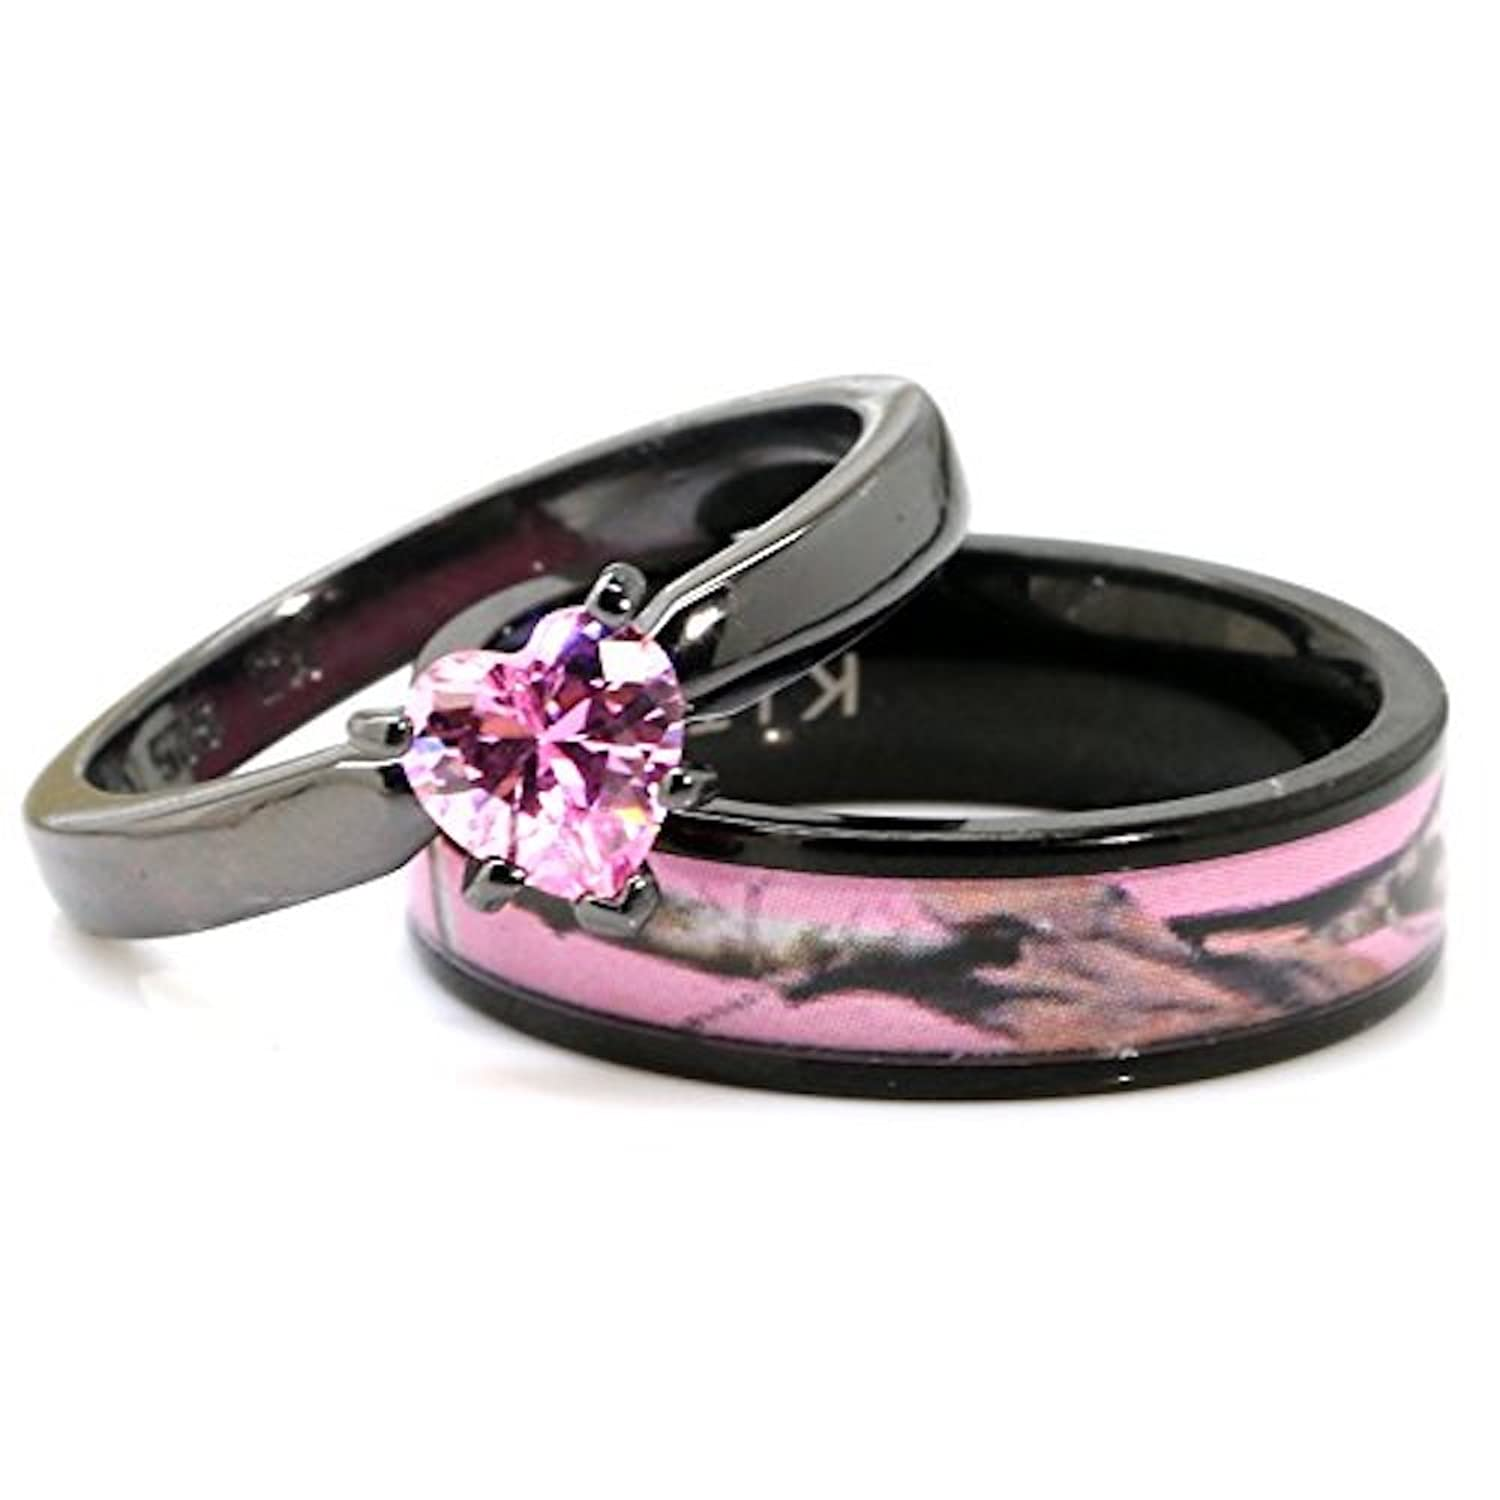 engagement heart wedding sweet setting stones andengraved rings side high diamond shaped pink with stamps name